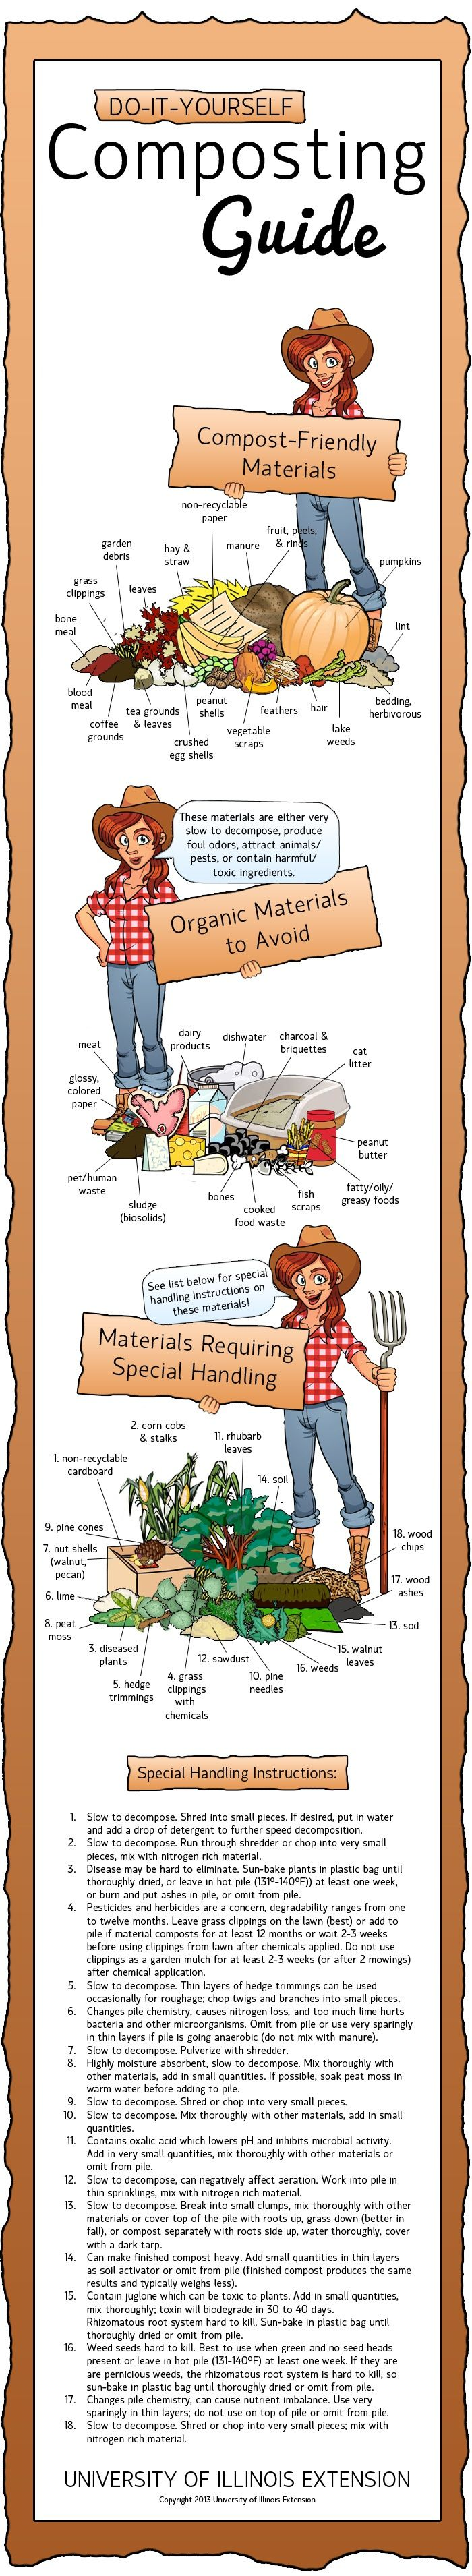 How to make a compost pile in your backyard - Thinking Of Starting A Compost Pile Make Sure You Know What You Should And Should